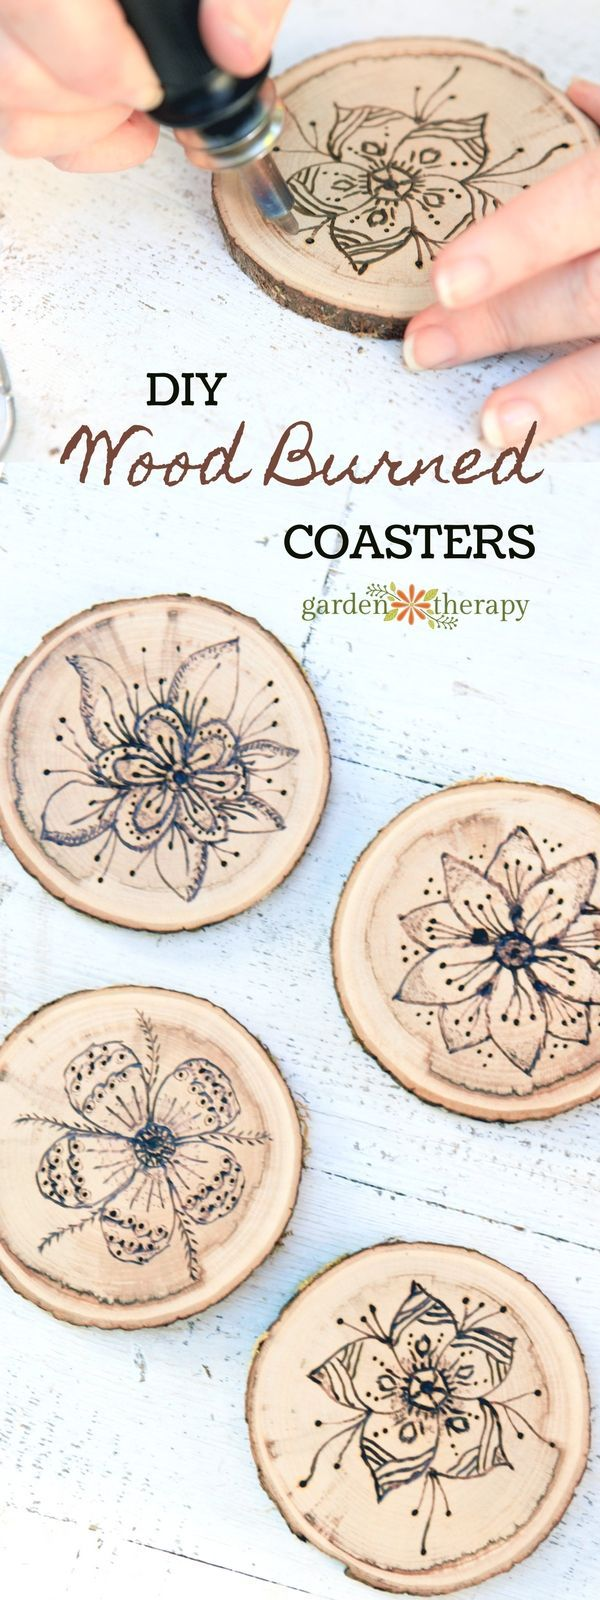 How to Make Wood Burned Coasters